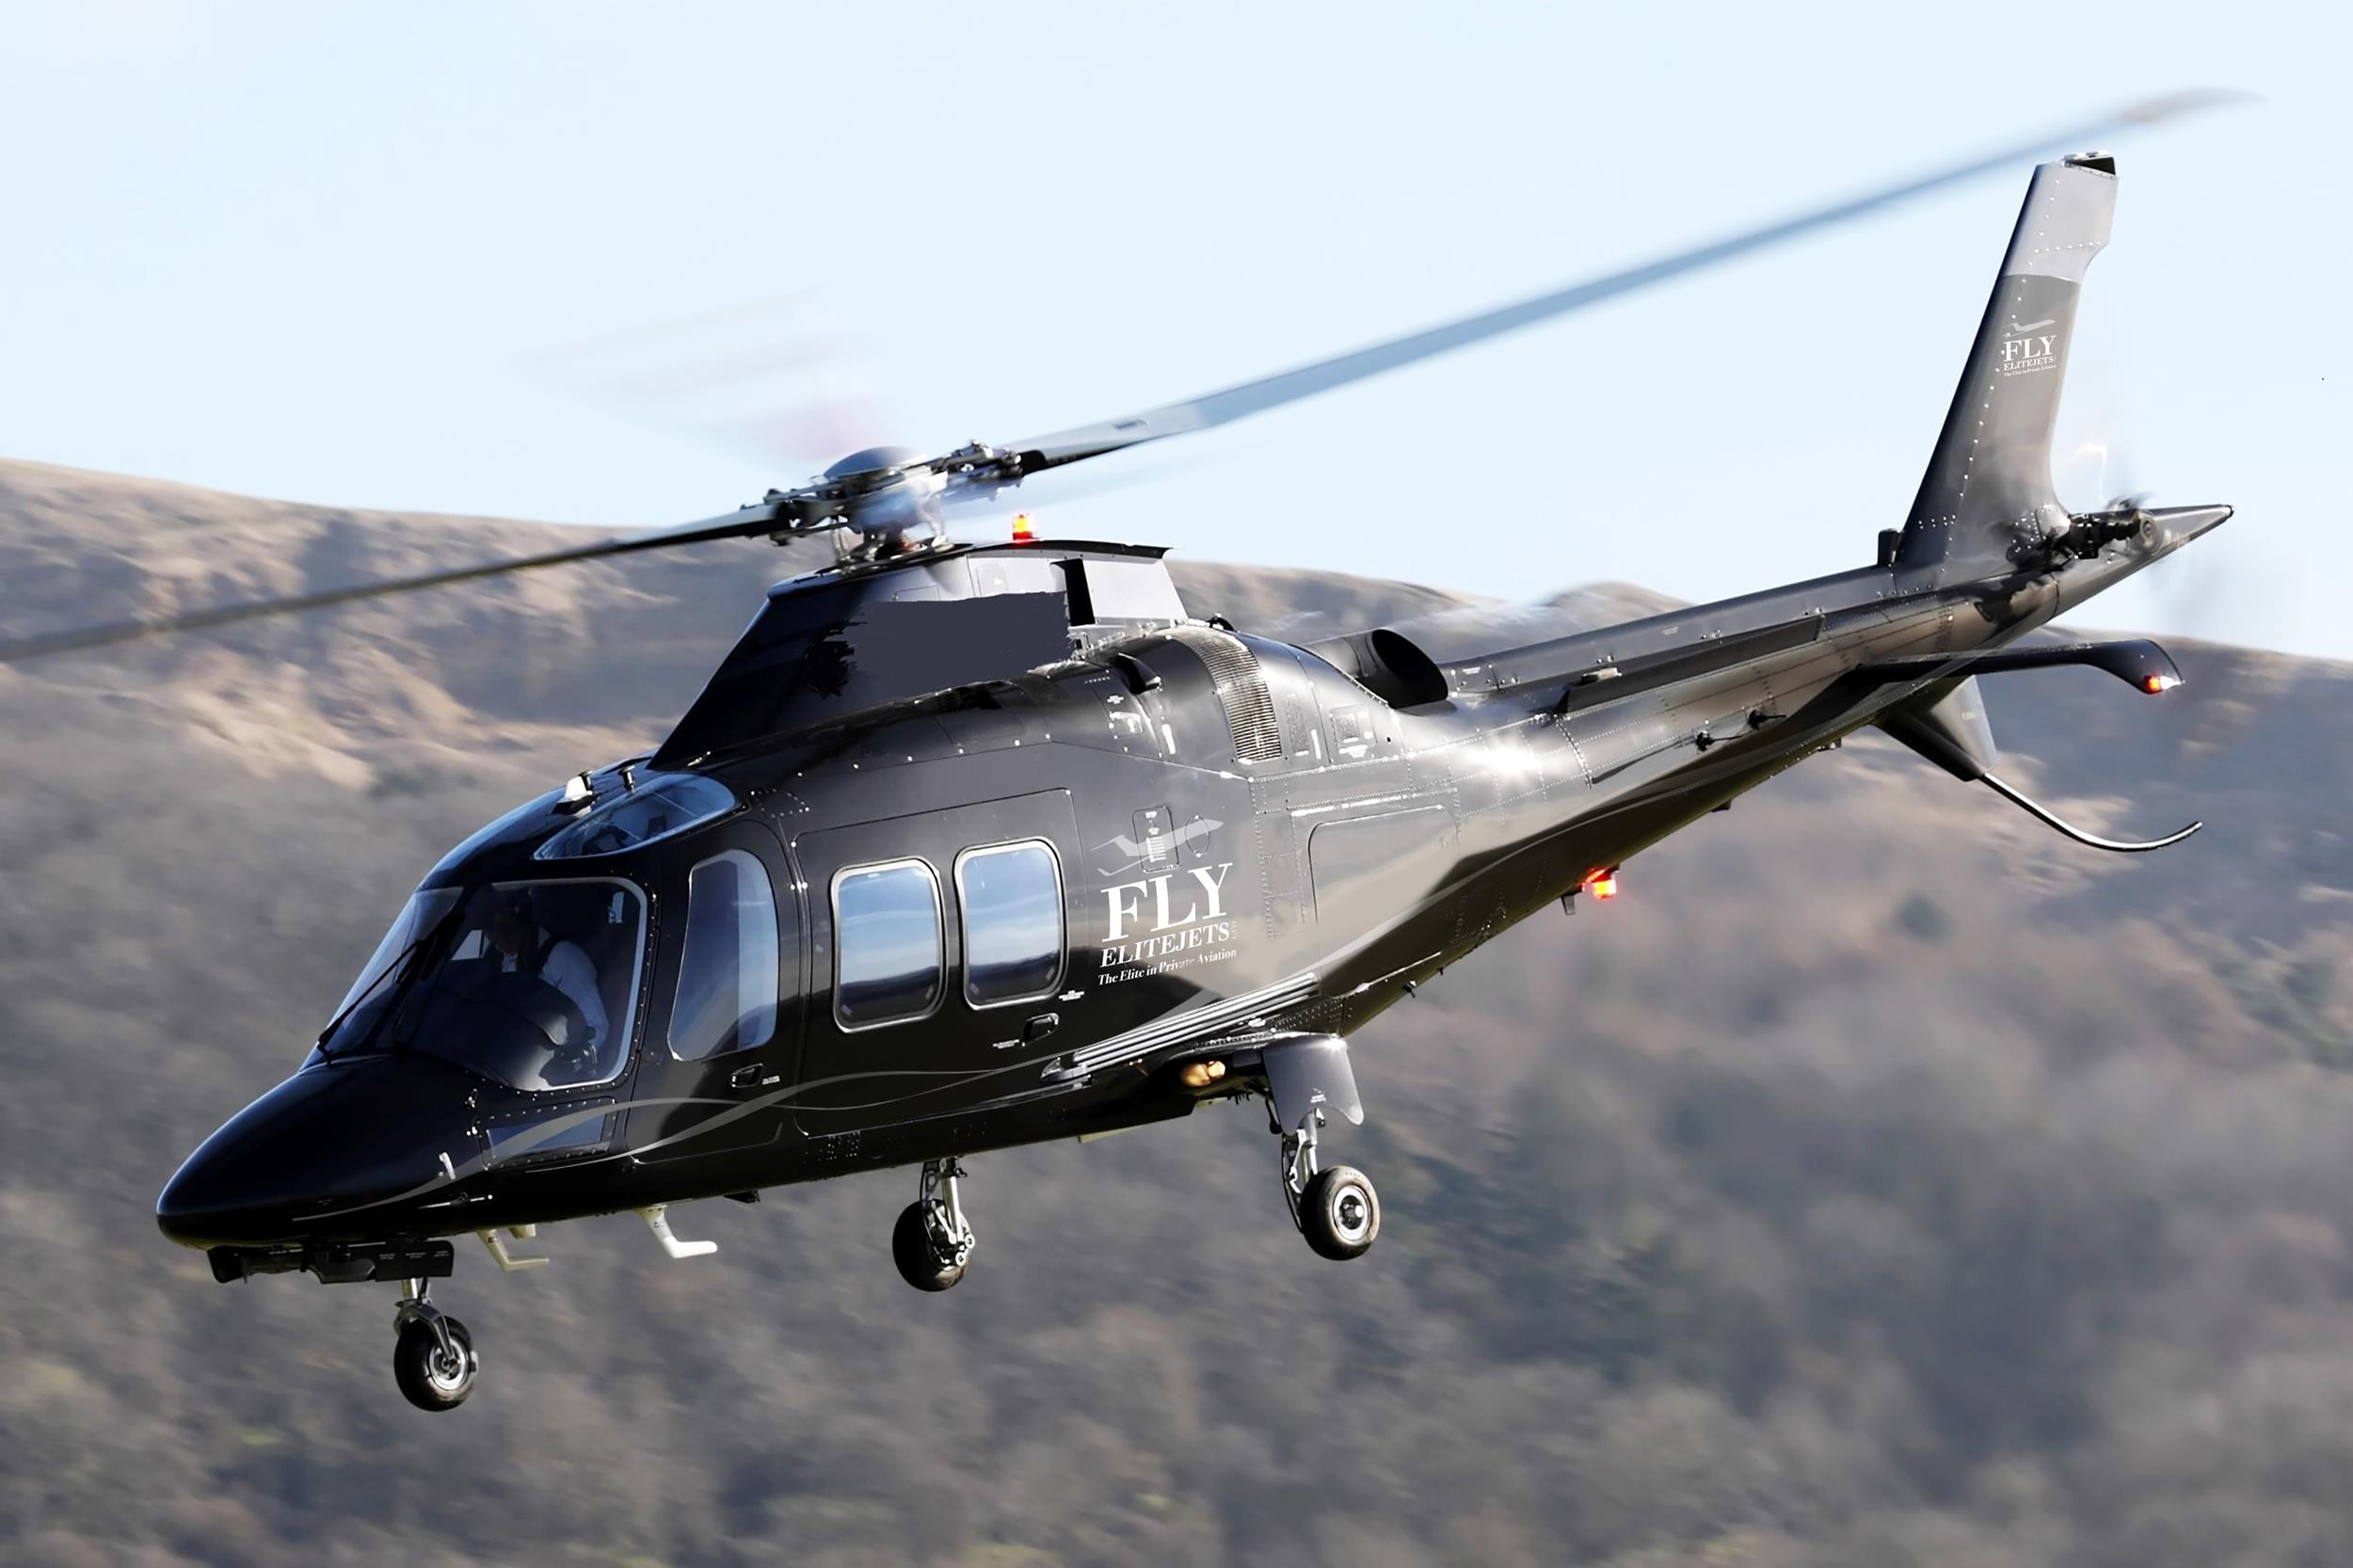 A109S Grande Helicopter_300dpi